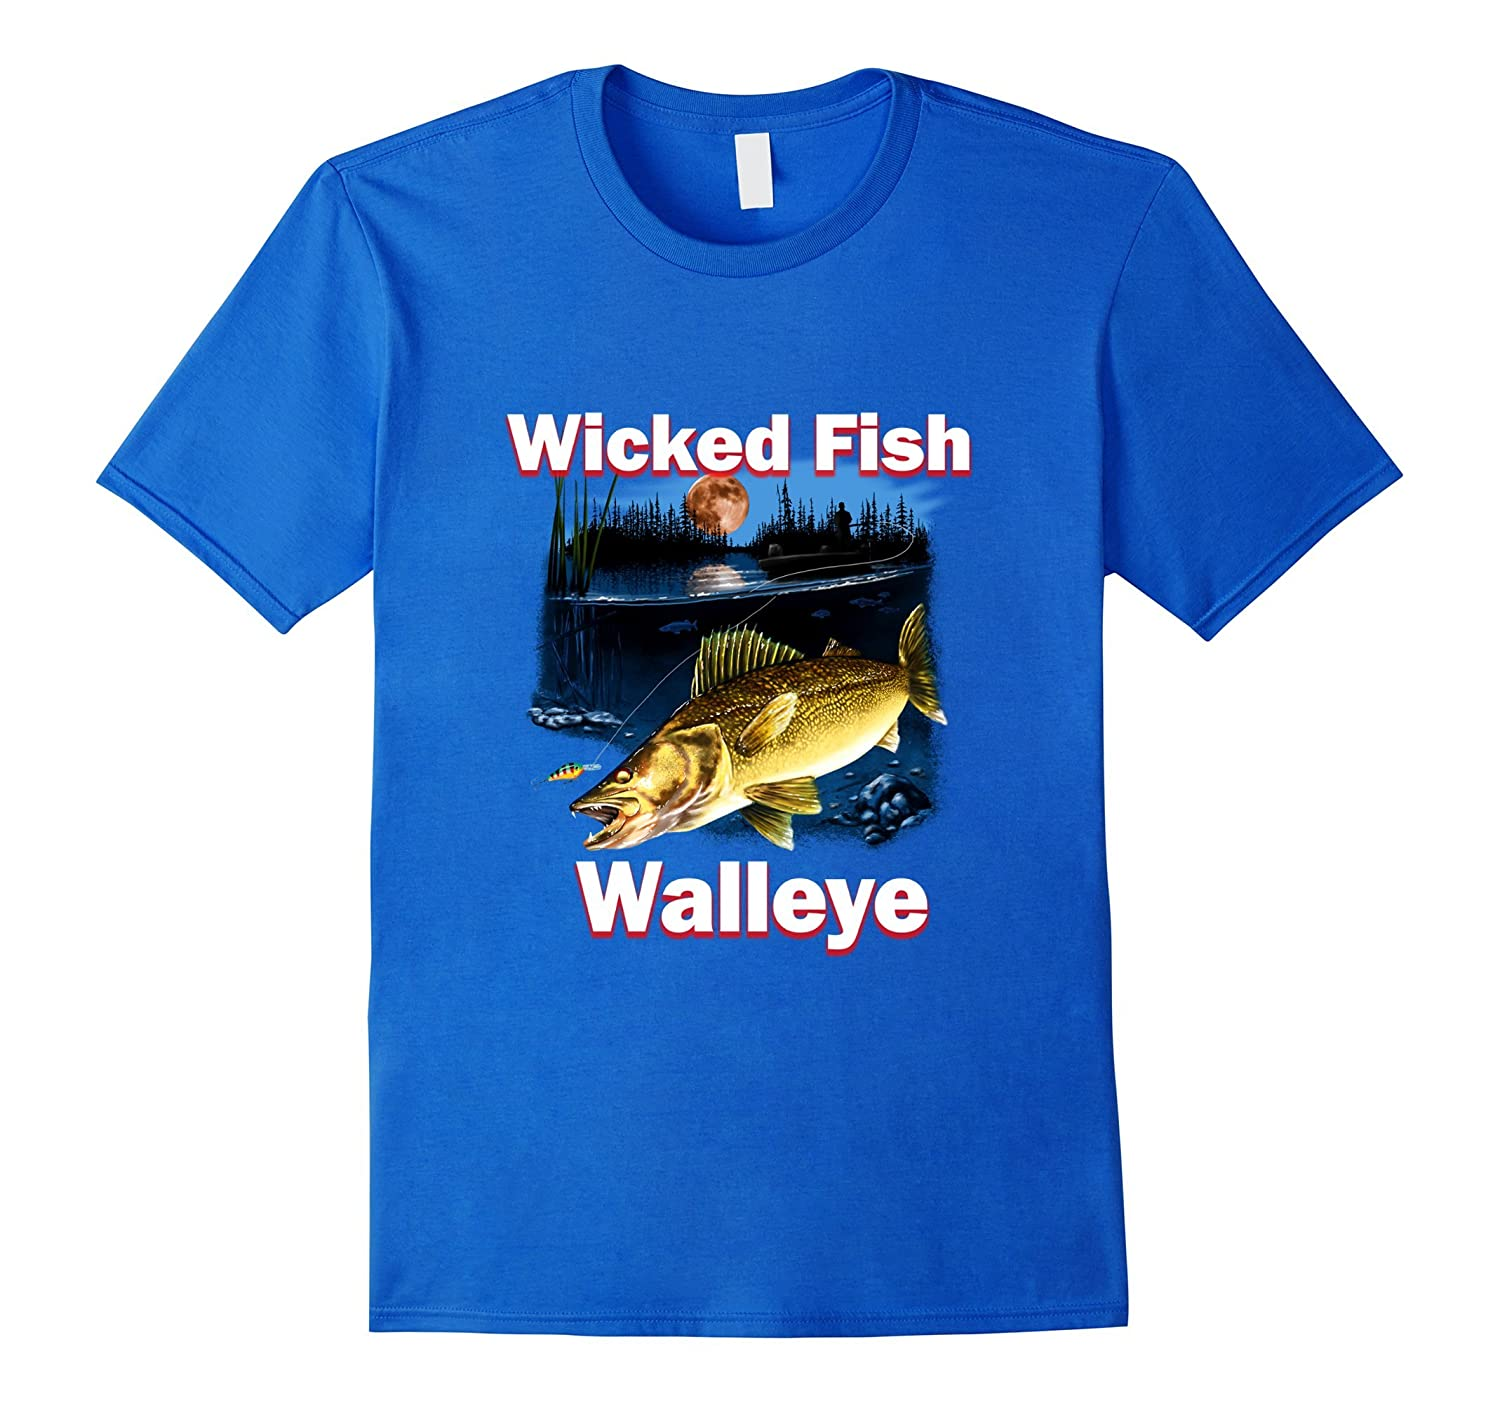 Fishing Tee Shirt Wicked Fish Walleye T Shirt Fishing Gift Vaci Vaciuk